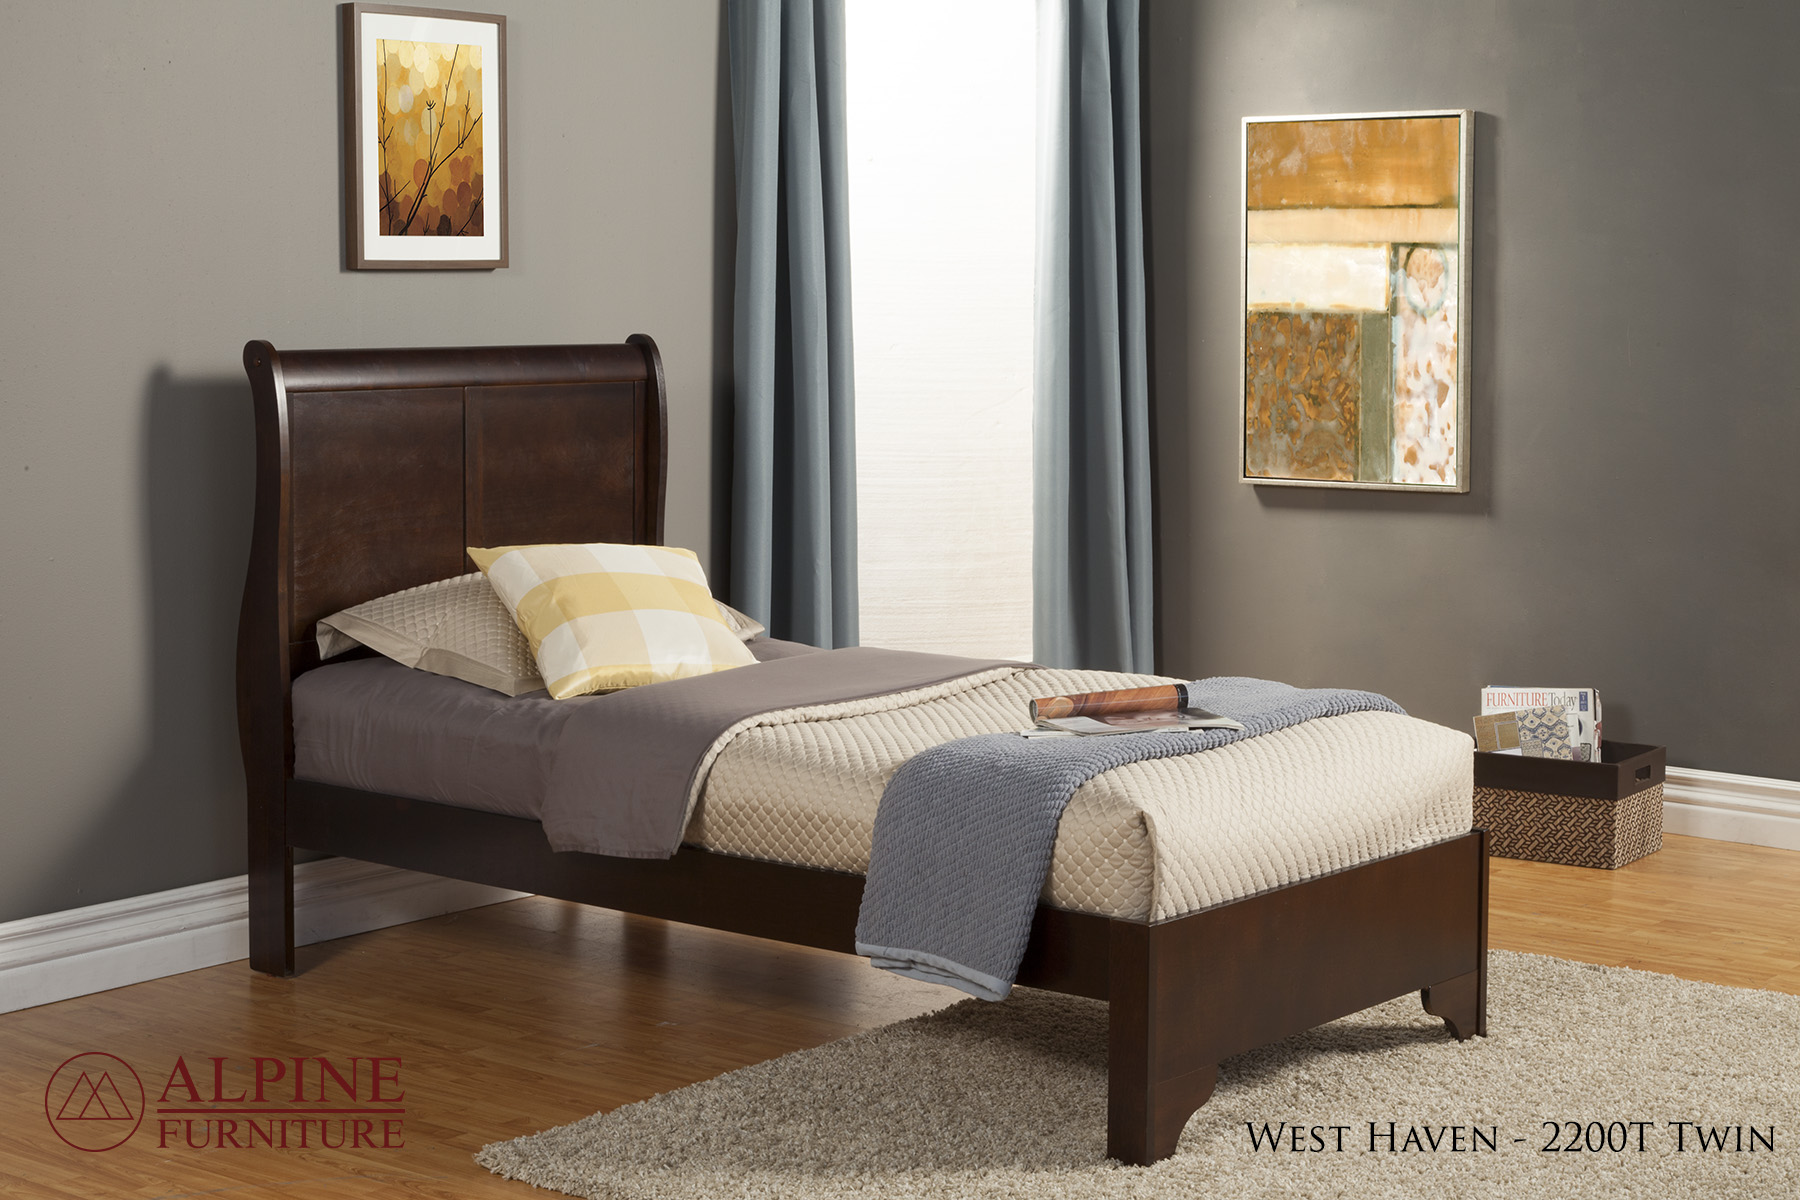 West Haven Twin Bed